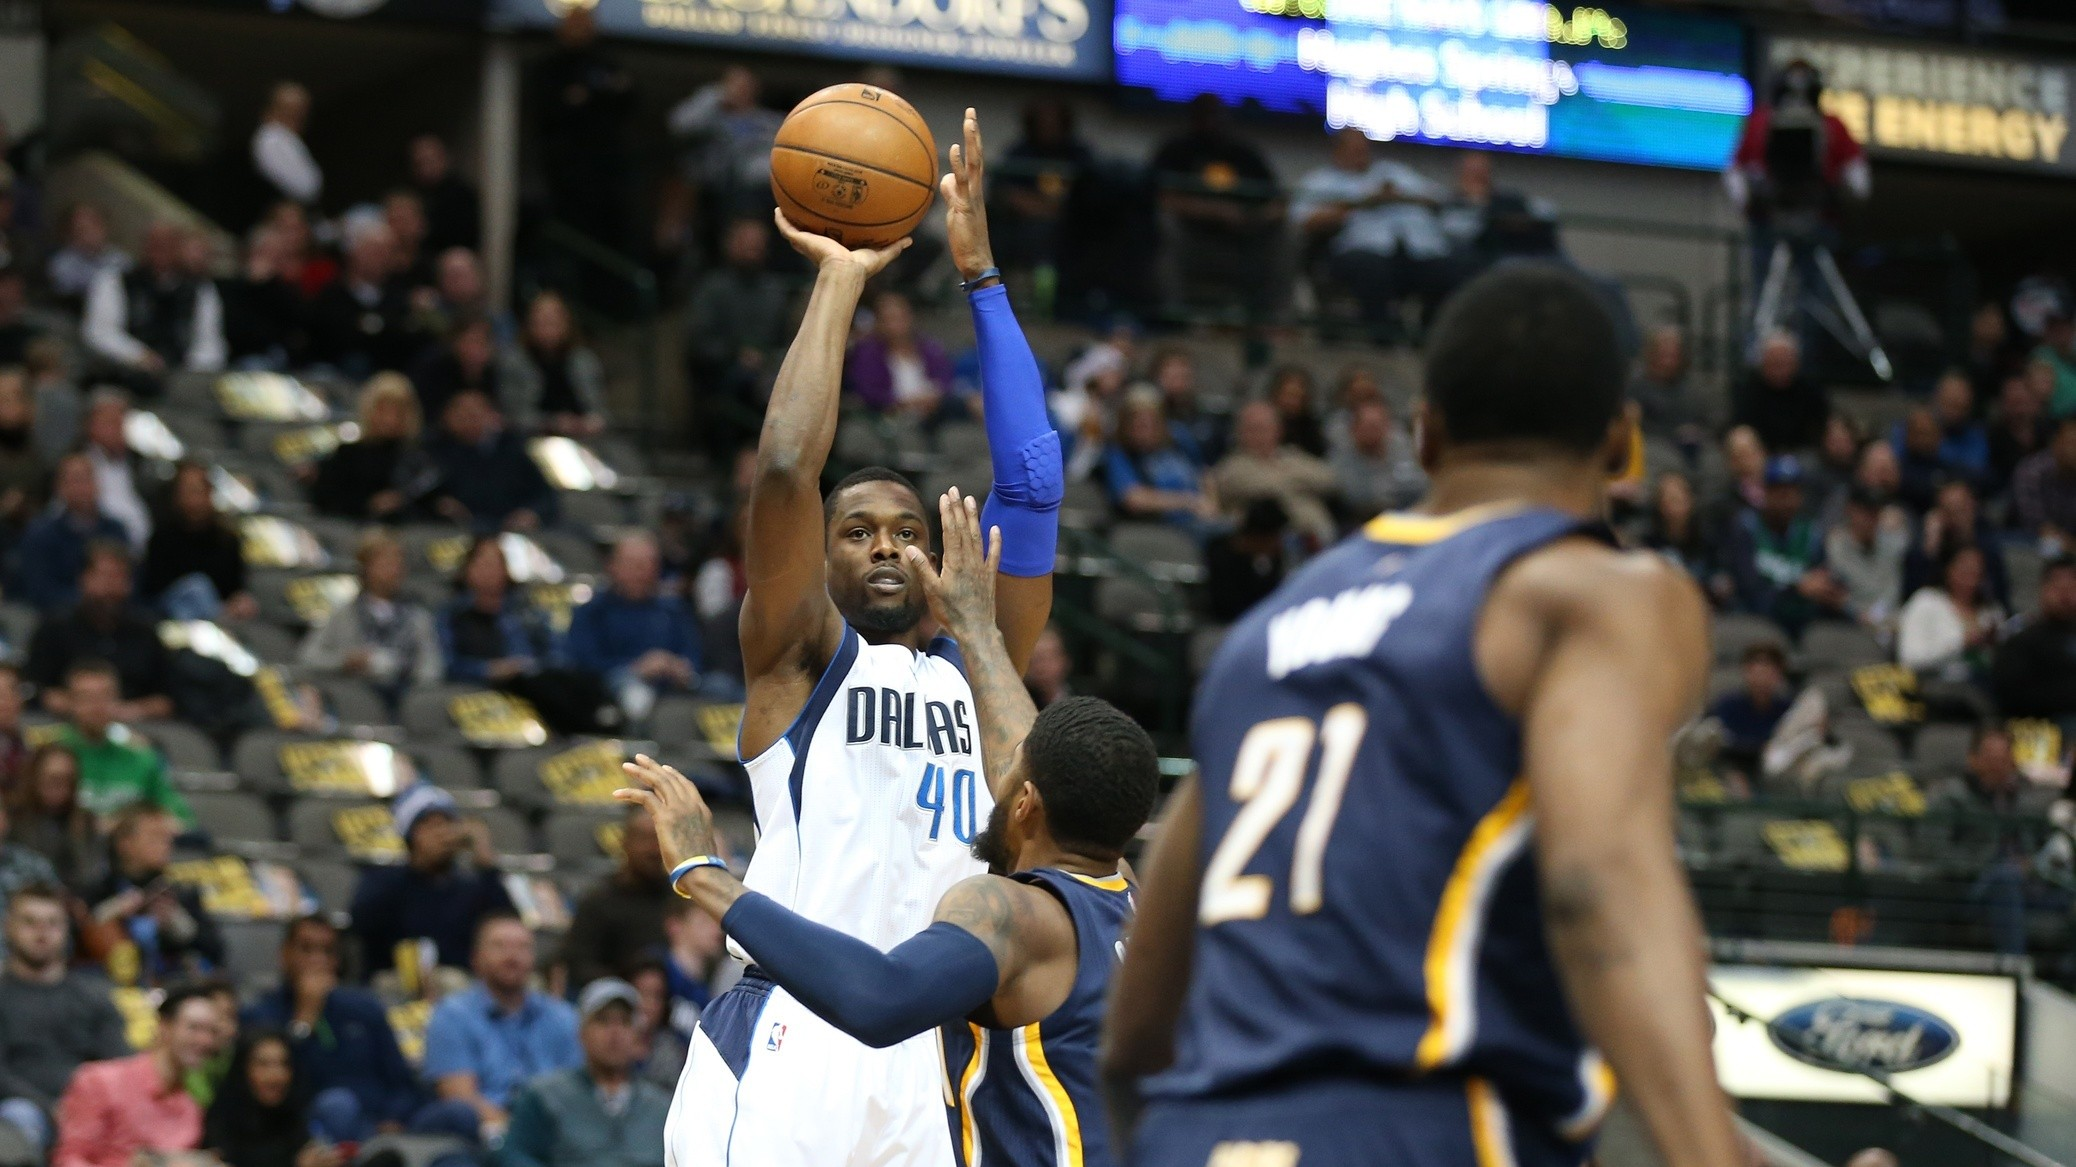 Harrison Barnes on Free Agency, the Olympics, and Playing with the Mavs